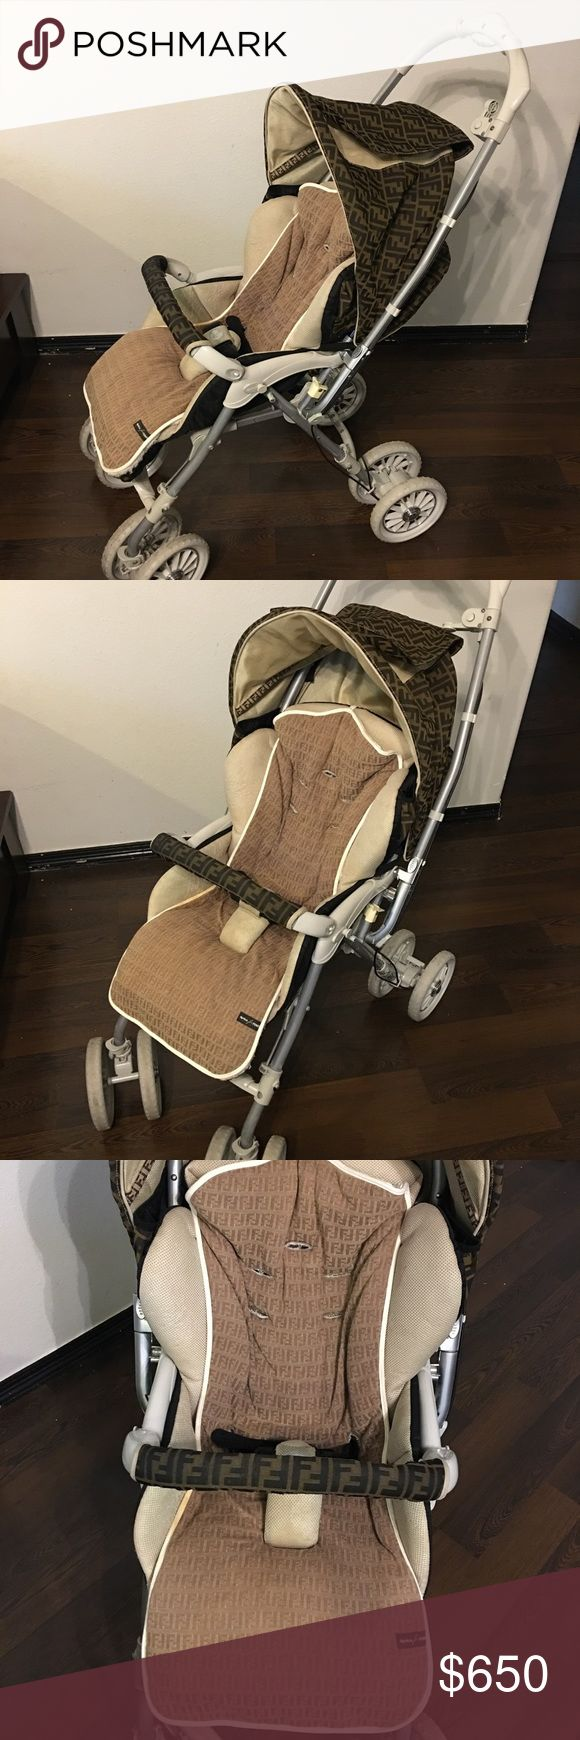 Authentic Fendi stroller by Aprica Rare no longer made